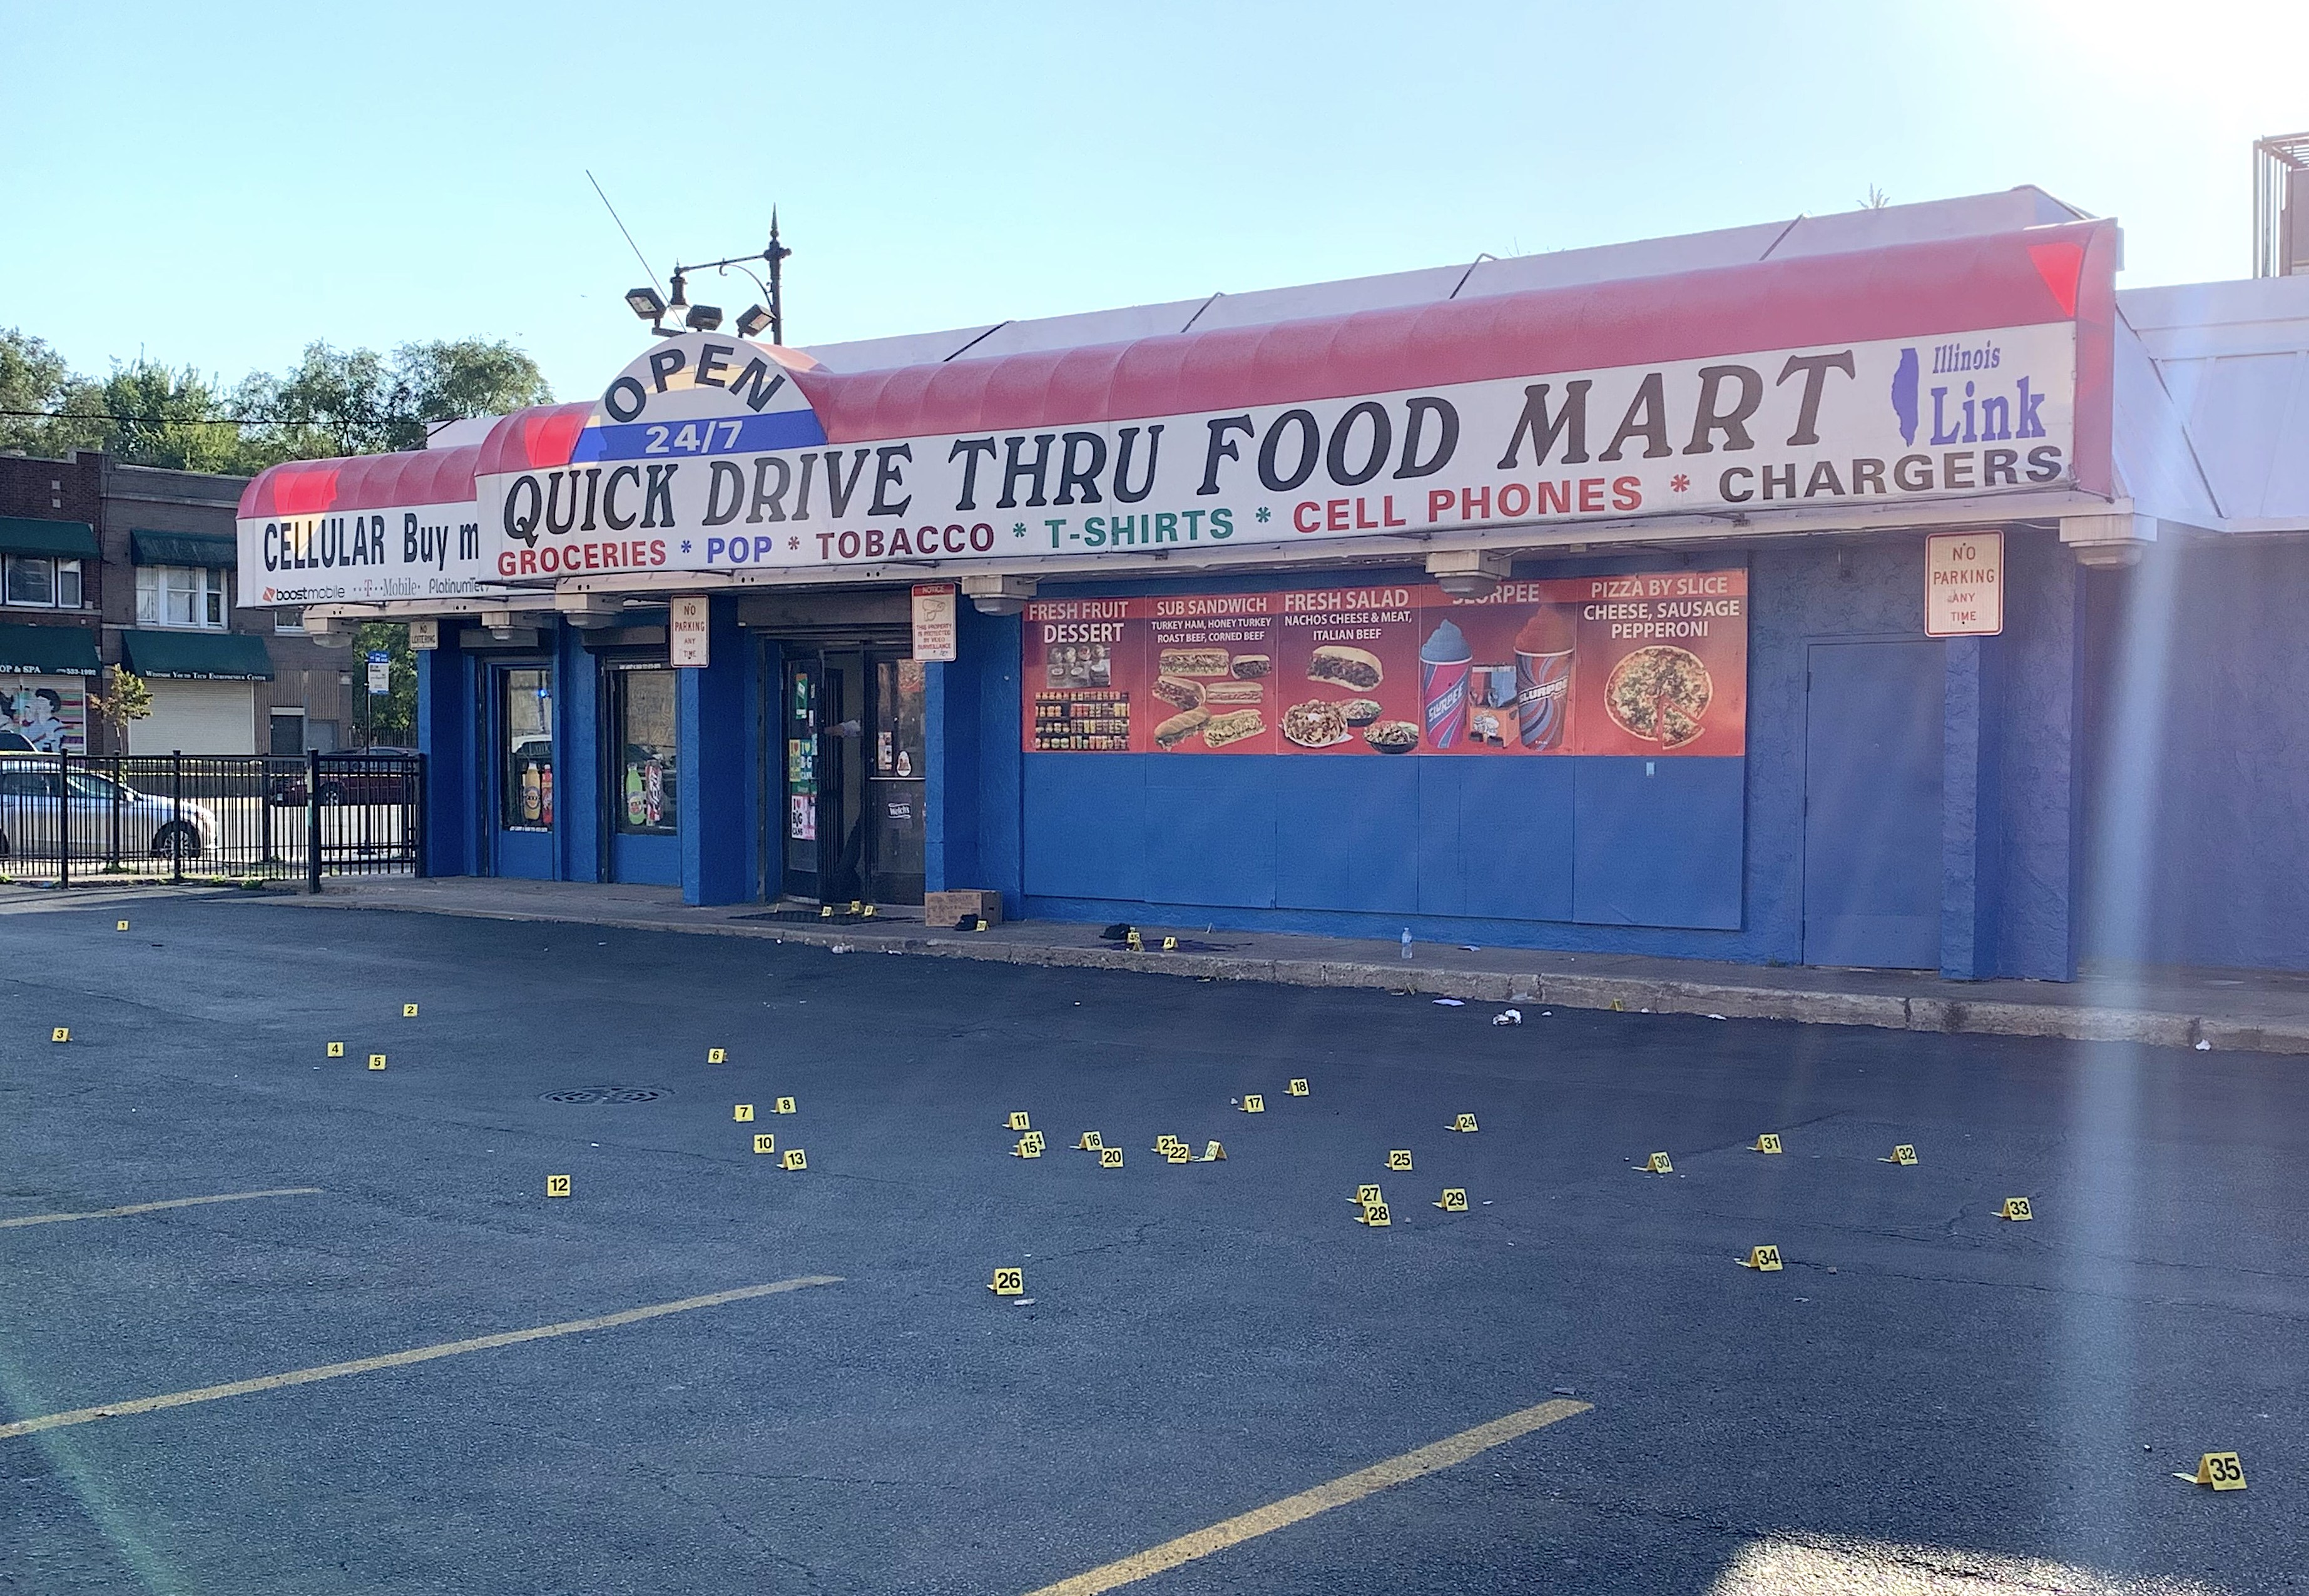 At least 40 evidence markers were laid out where four men were shot in front of a West Garfield Park store on Sept. 18, 2019. | Jake Wittich/Sun-Times